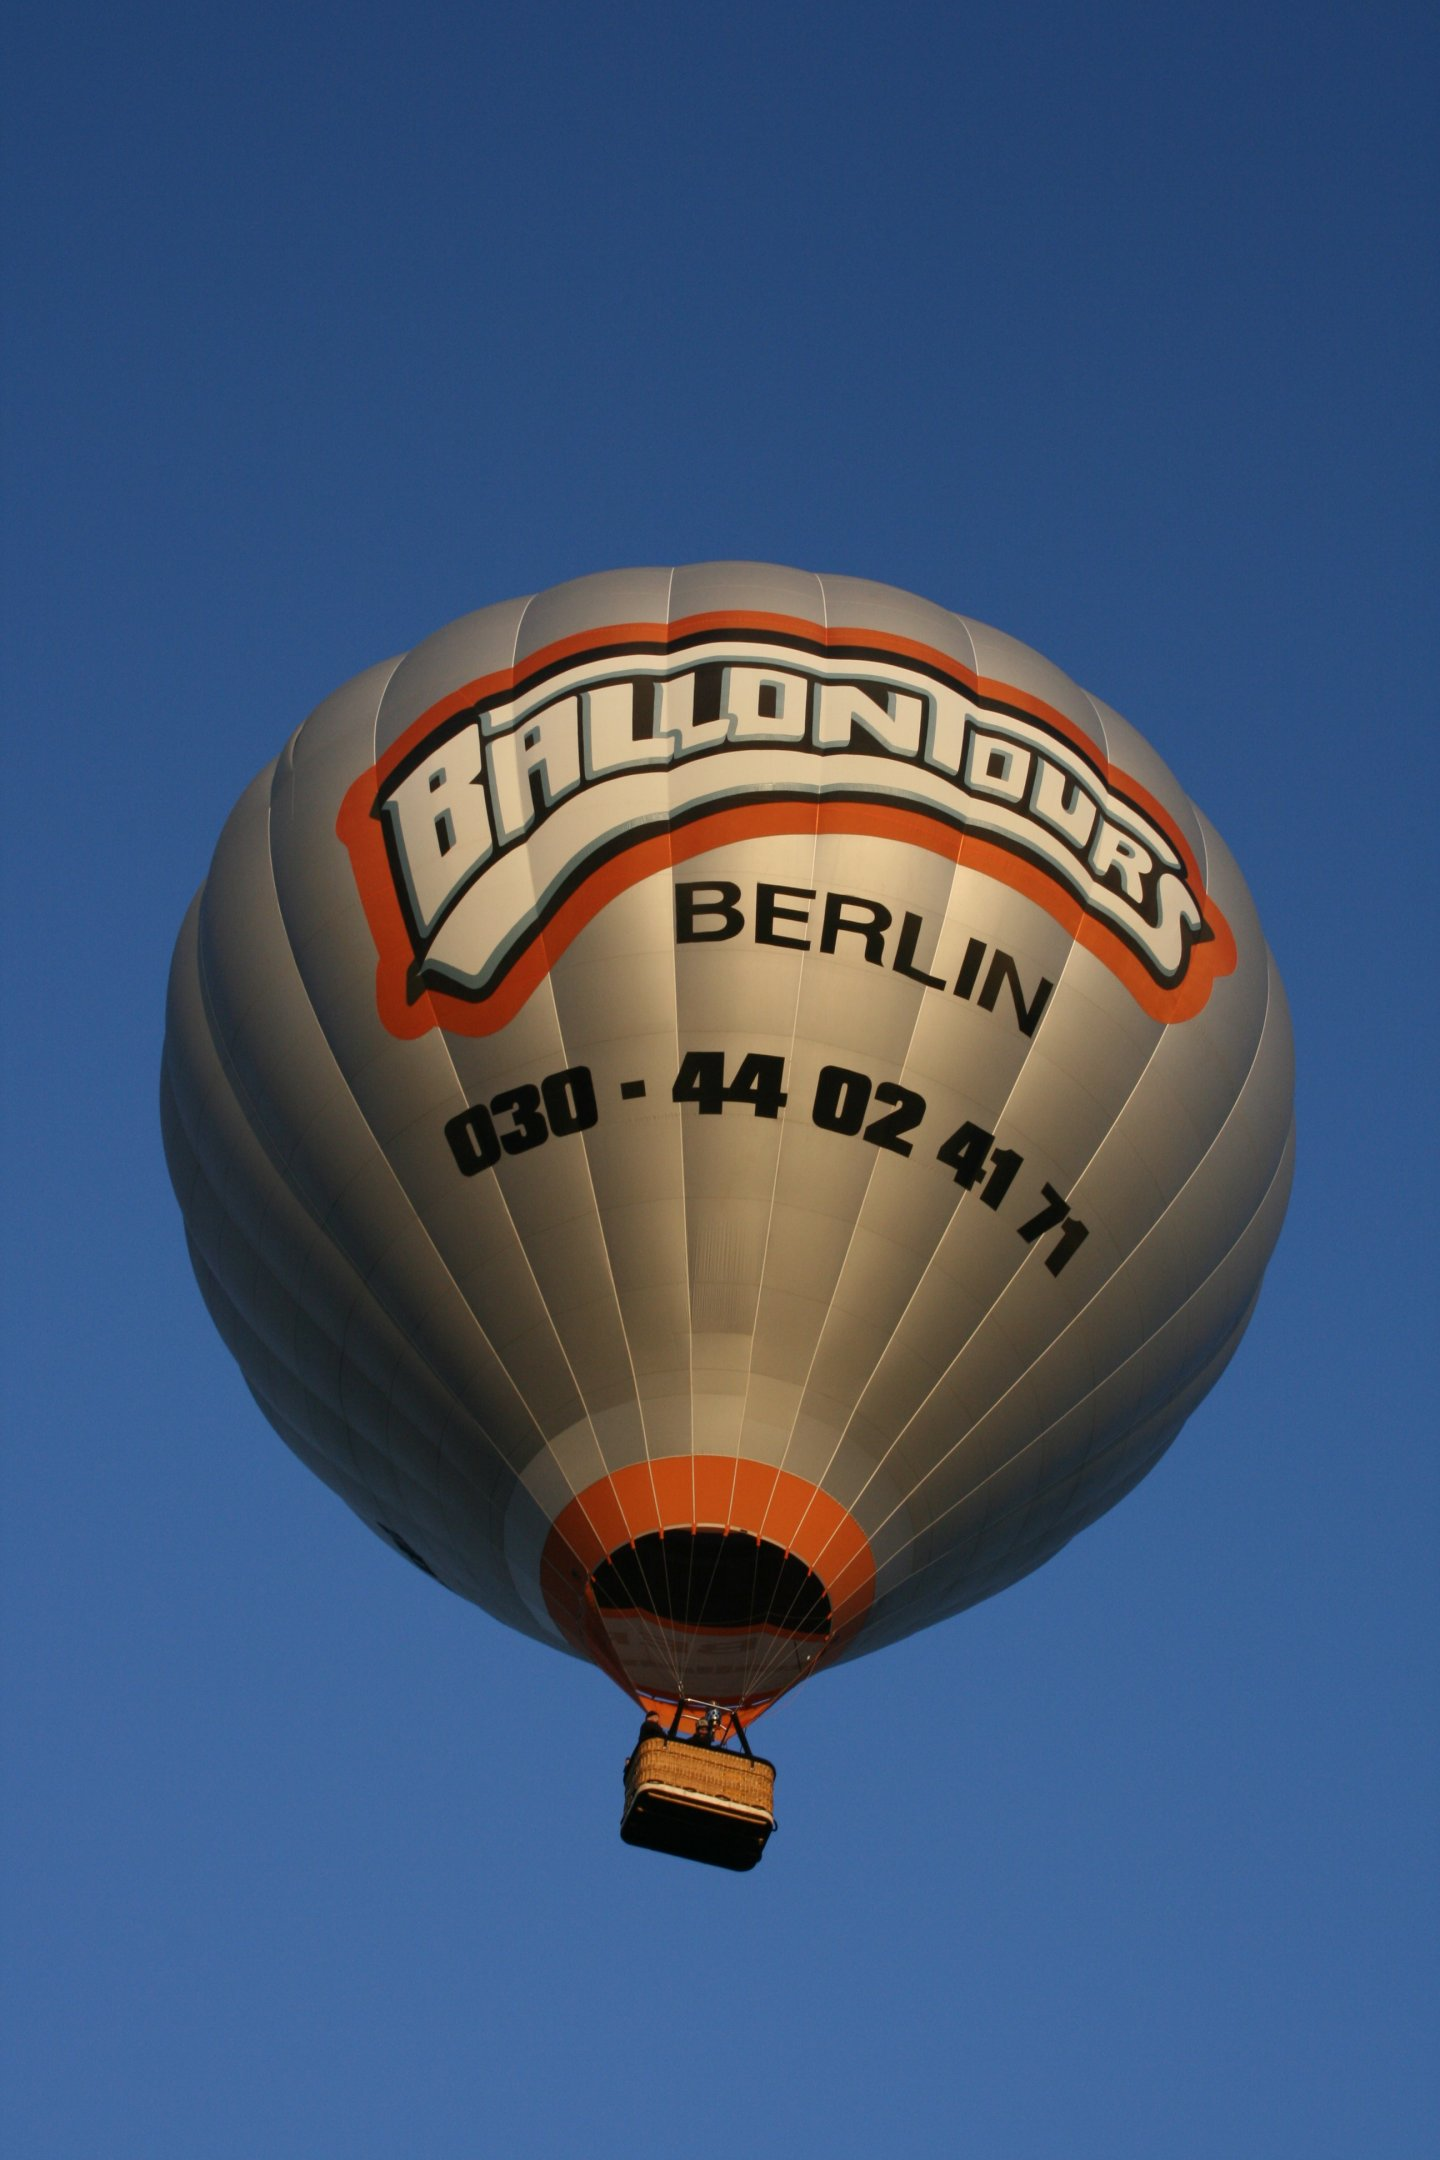 Ballon-Tours Berlin